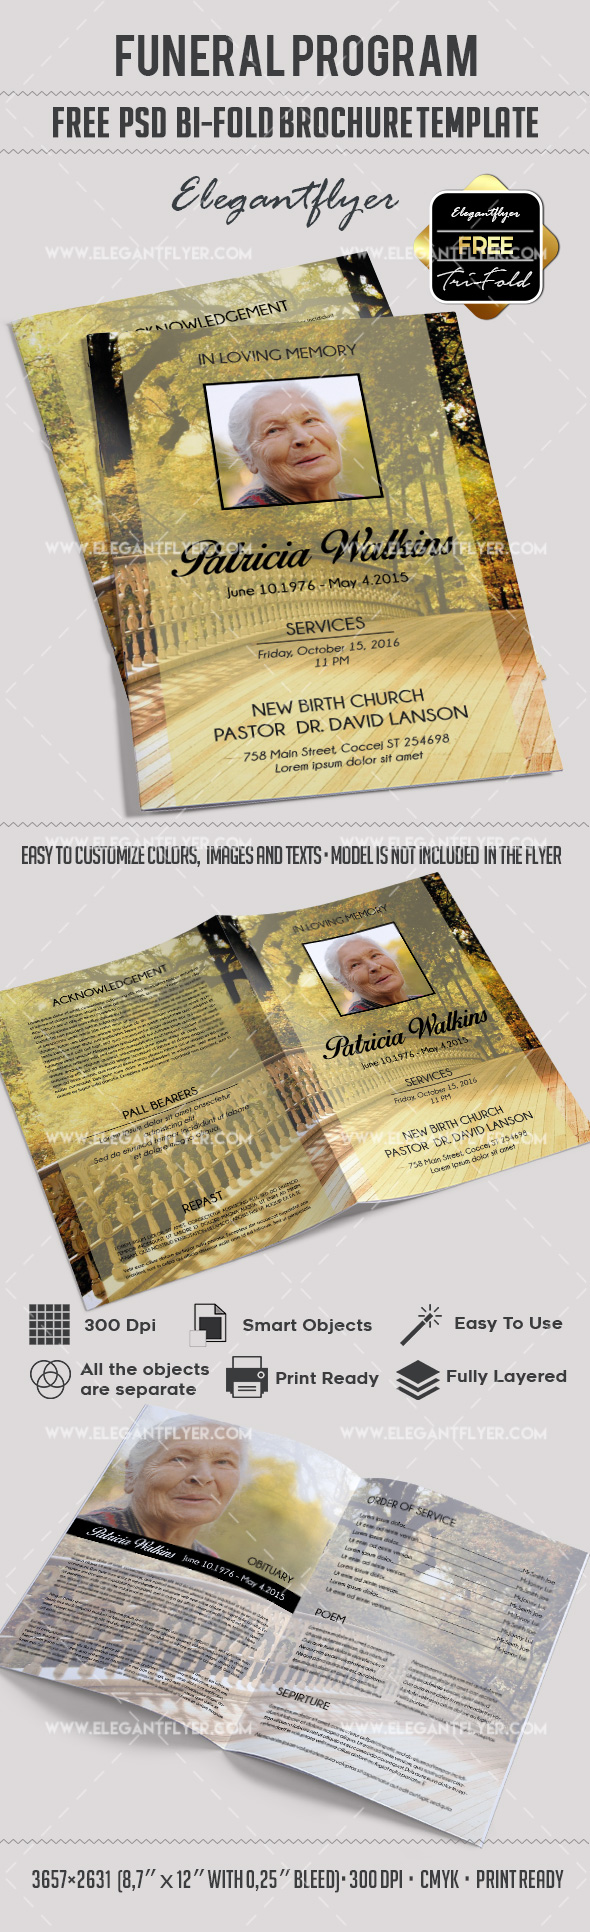 Funeral Program Templates Free Bi-Fold Brochure